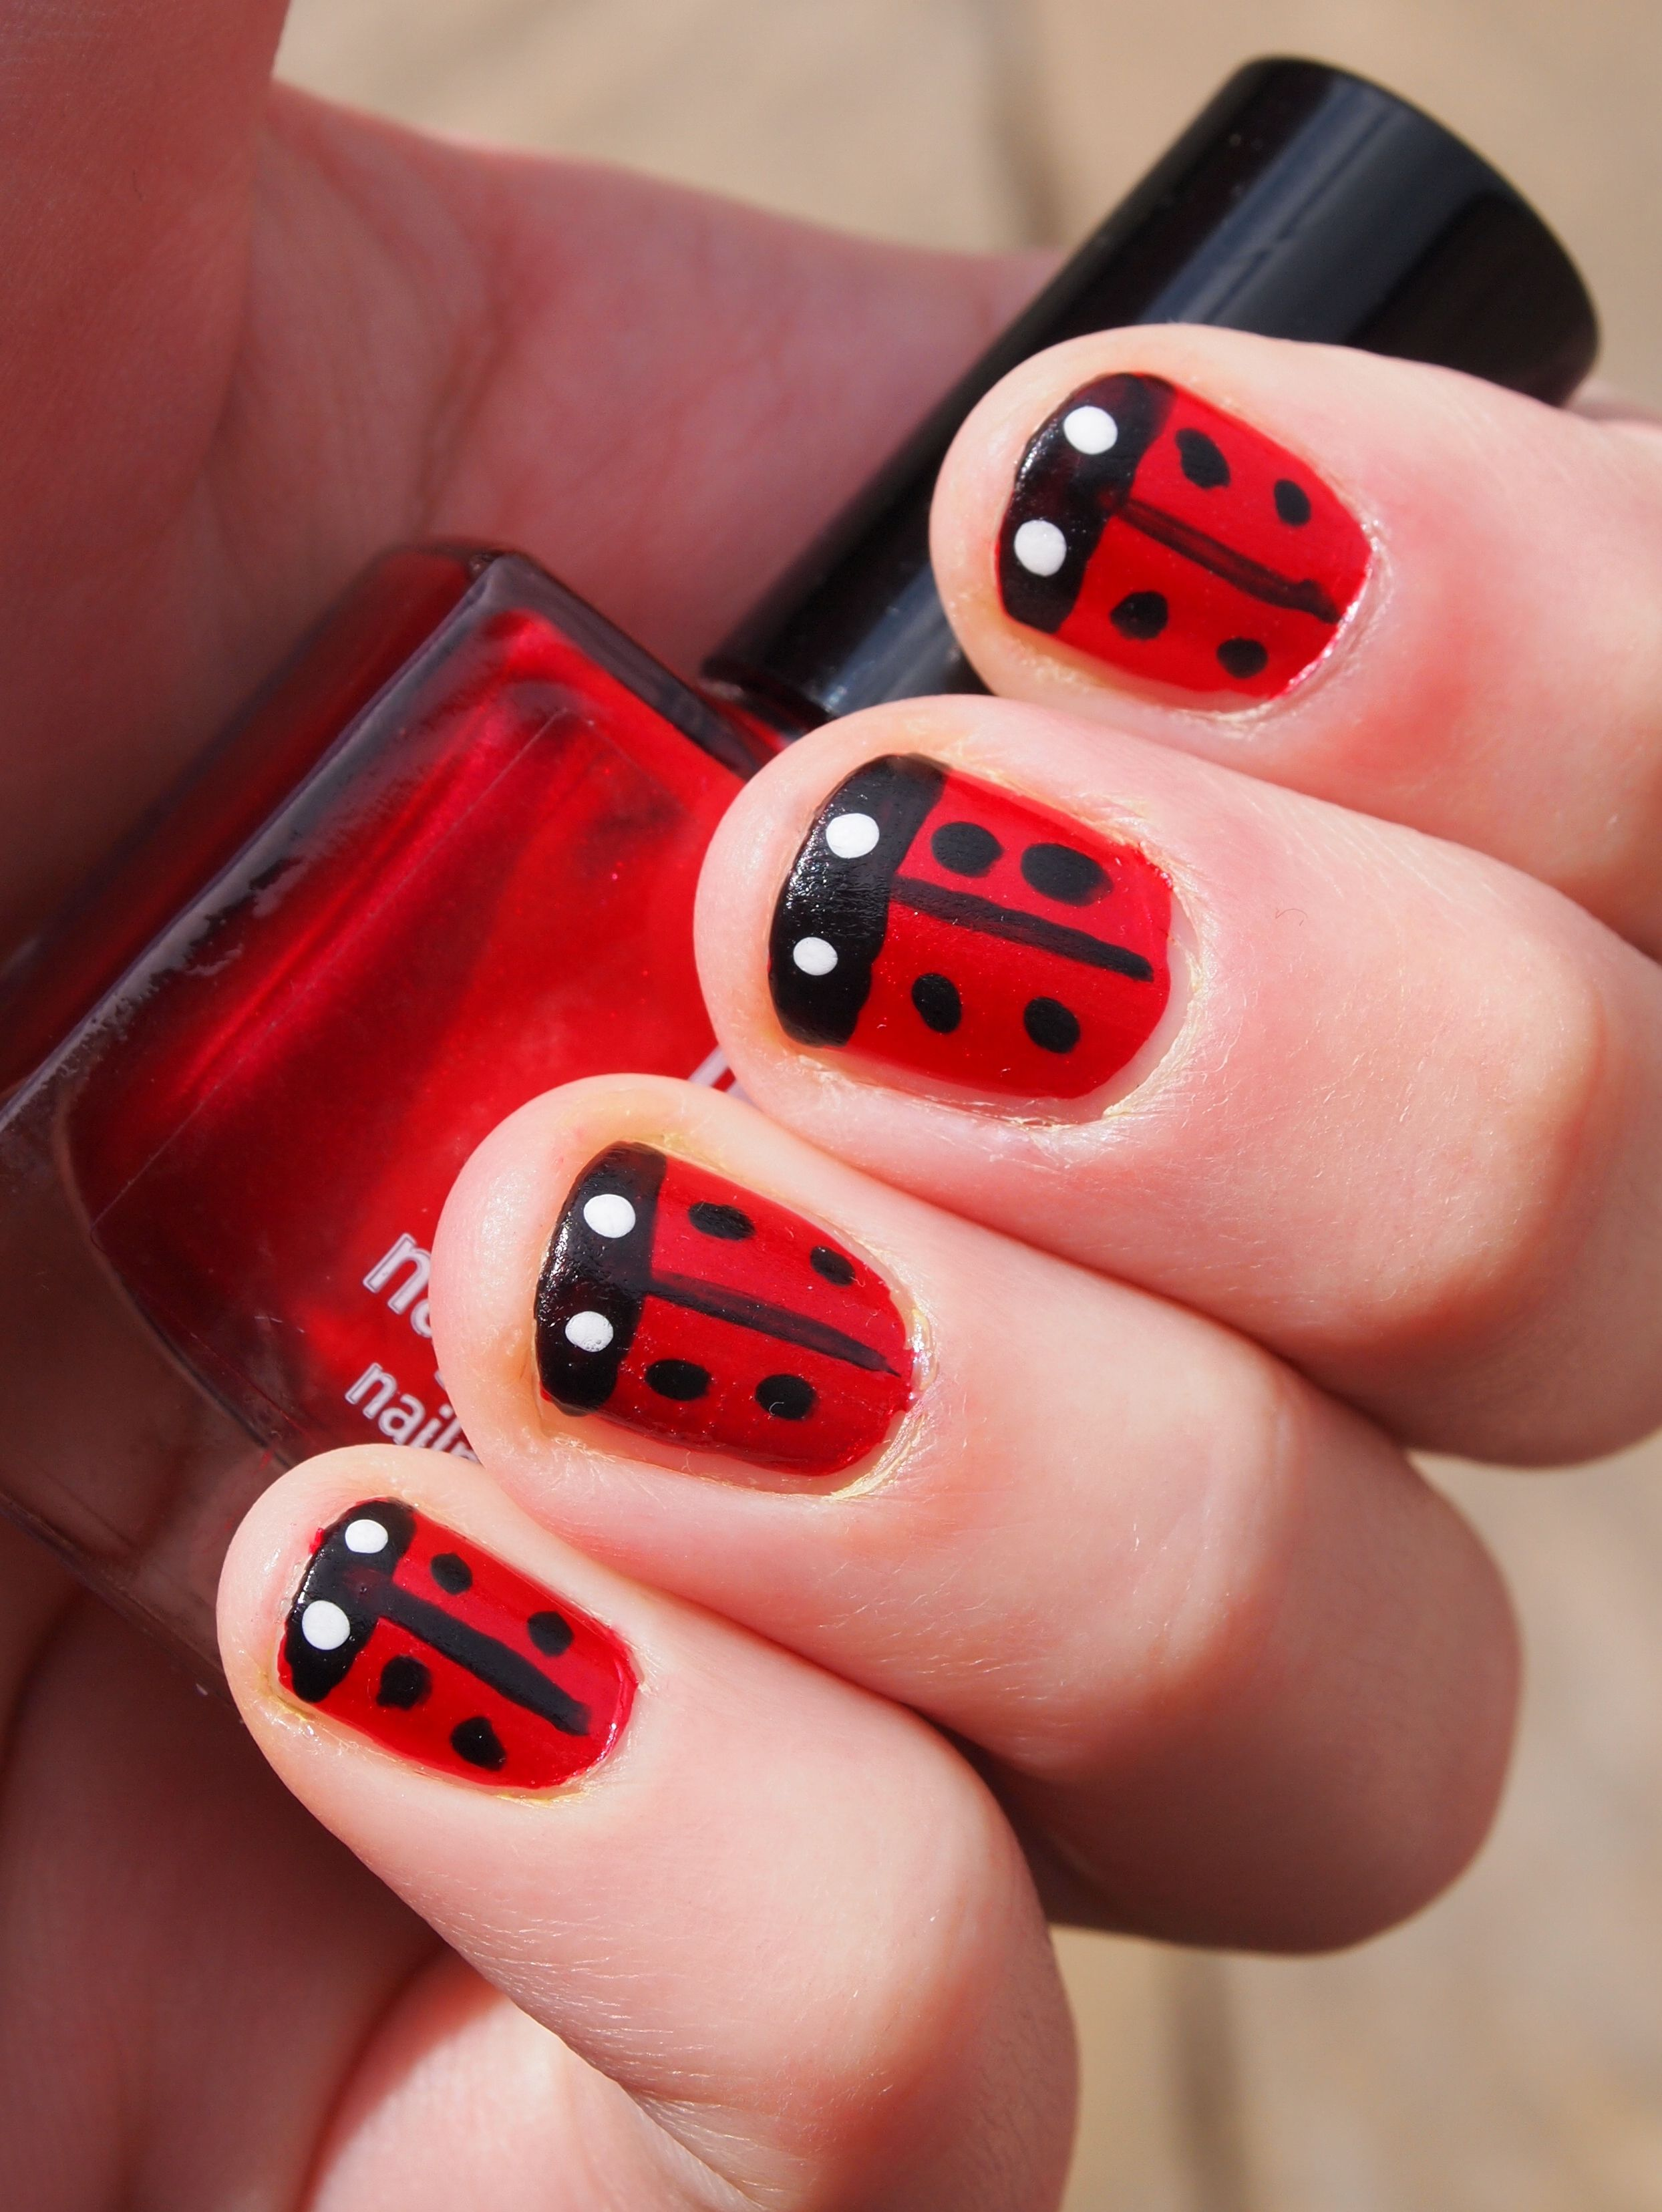 Red nail art 1 769x1024 on designs next httpdesignsnext red nail art 1 769x1024 on designs next httpdesignsnext prinsesfo Images